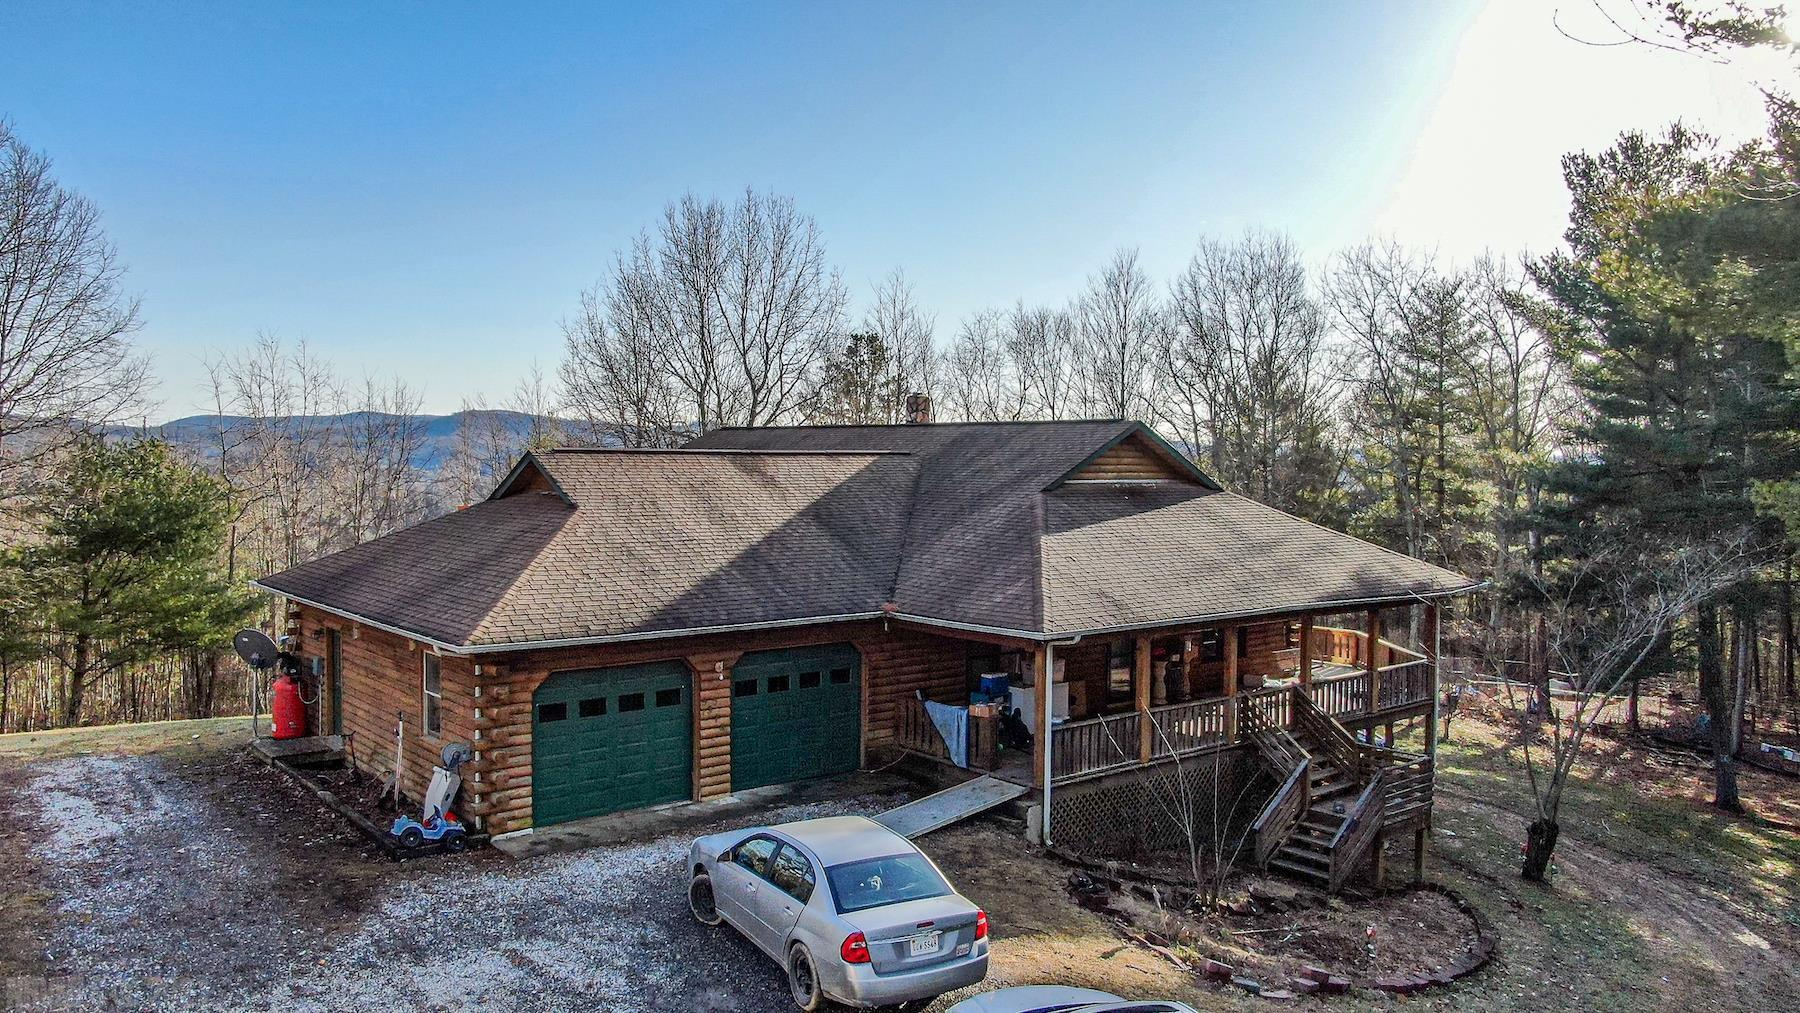 This home features 4,000 sq. ft. with 6 bedrooms and 3 full bathrooms. There are 2 levels, a main level and a basement. The basement is 2,000 sq. ft. and has 3 bedrooms, 1 full bath and 2 kitchenettes. Perfect for use as a mother-in-law suite. On the main level, there are 3 bedrooms and 2 bathrooms. The laundry is located on the main level as well. The home is on a private well, private septic and has a heat pump. There is also a gas log fireplace in the living room. This home has a fabulous covered, wrap around deck and the potential for an amazing mountain view. This property consists of 2 parcels combined to equal 9.16 +/- acres. The surrounding acreage is mostly wooded and is great for recreational use and privacy! Harvest Road is a shared drive and is privately maintained.